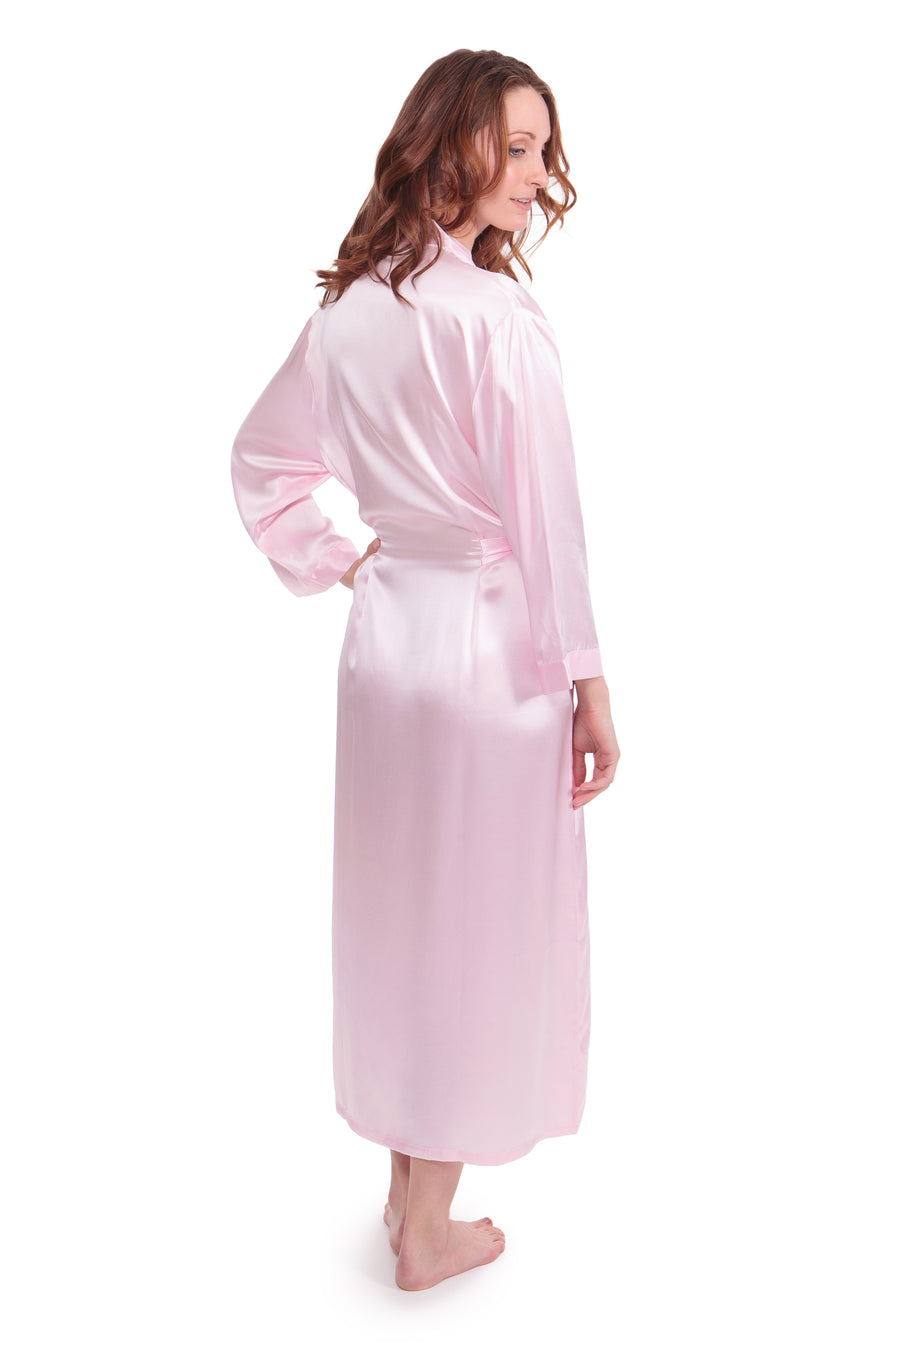 Perla Naturale - Women's Silk Long Robe - testing23451234 - Robes